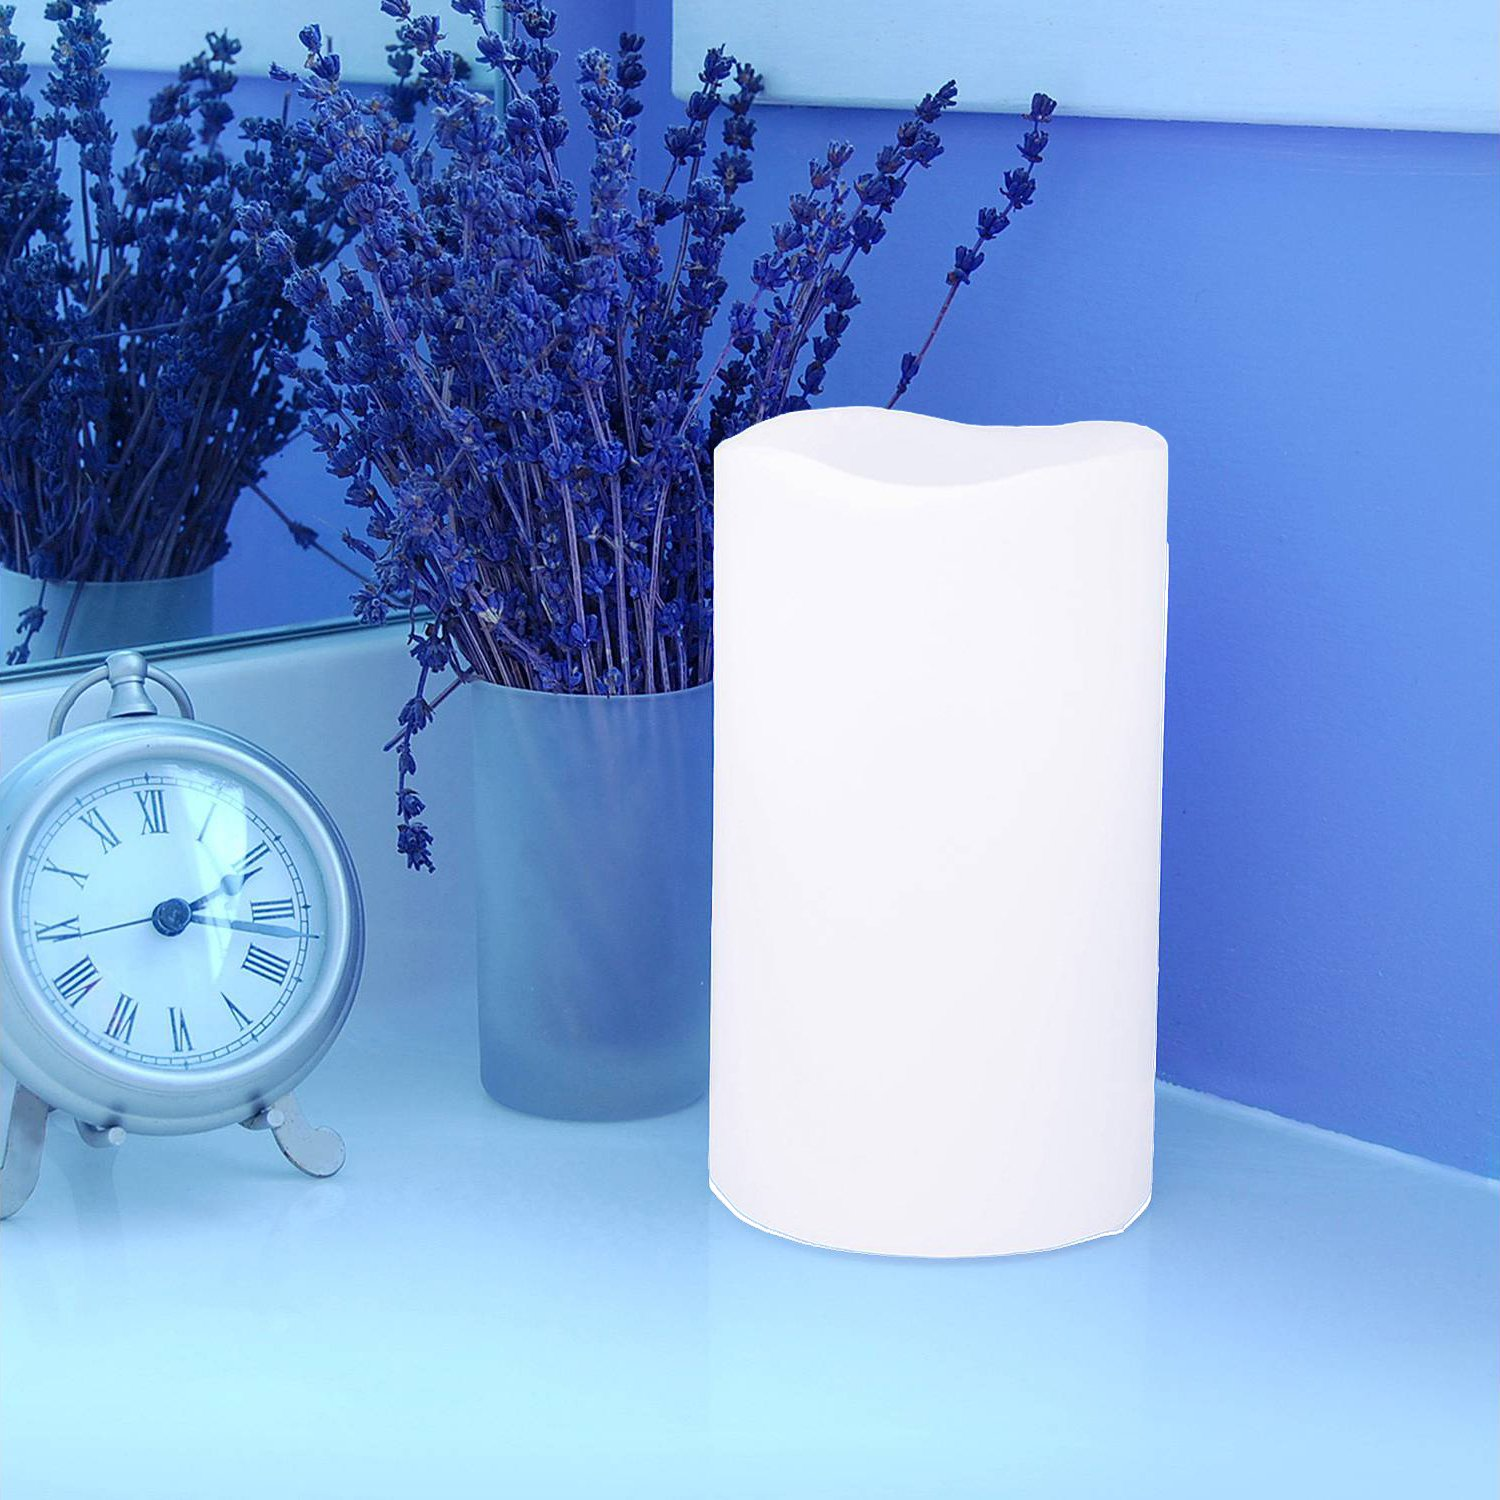 Outdoor Flameless Pillar Candles Pair 6'', Aimetech Real Wax Battery Operated Flickering LED Candle Light, Warm White Light by Aimetech (Image #7)